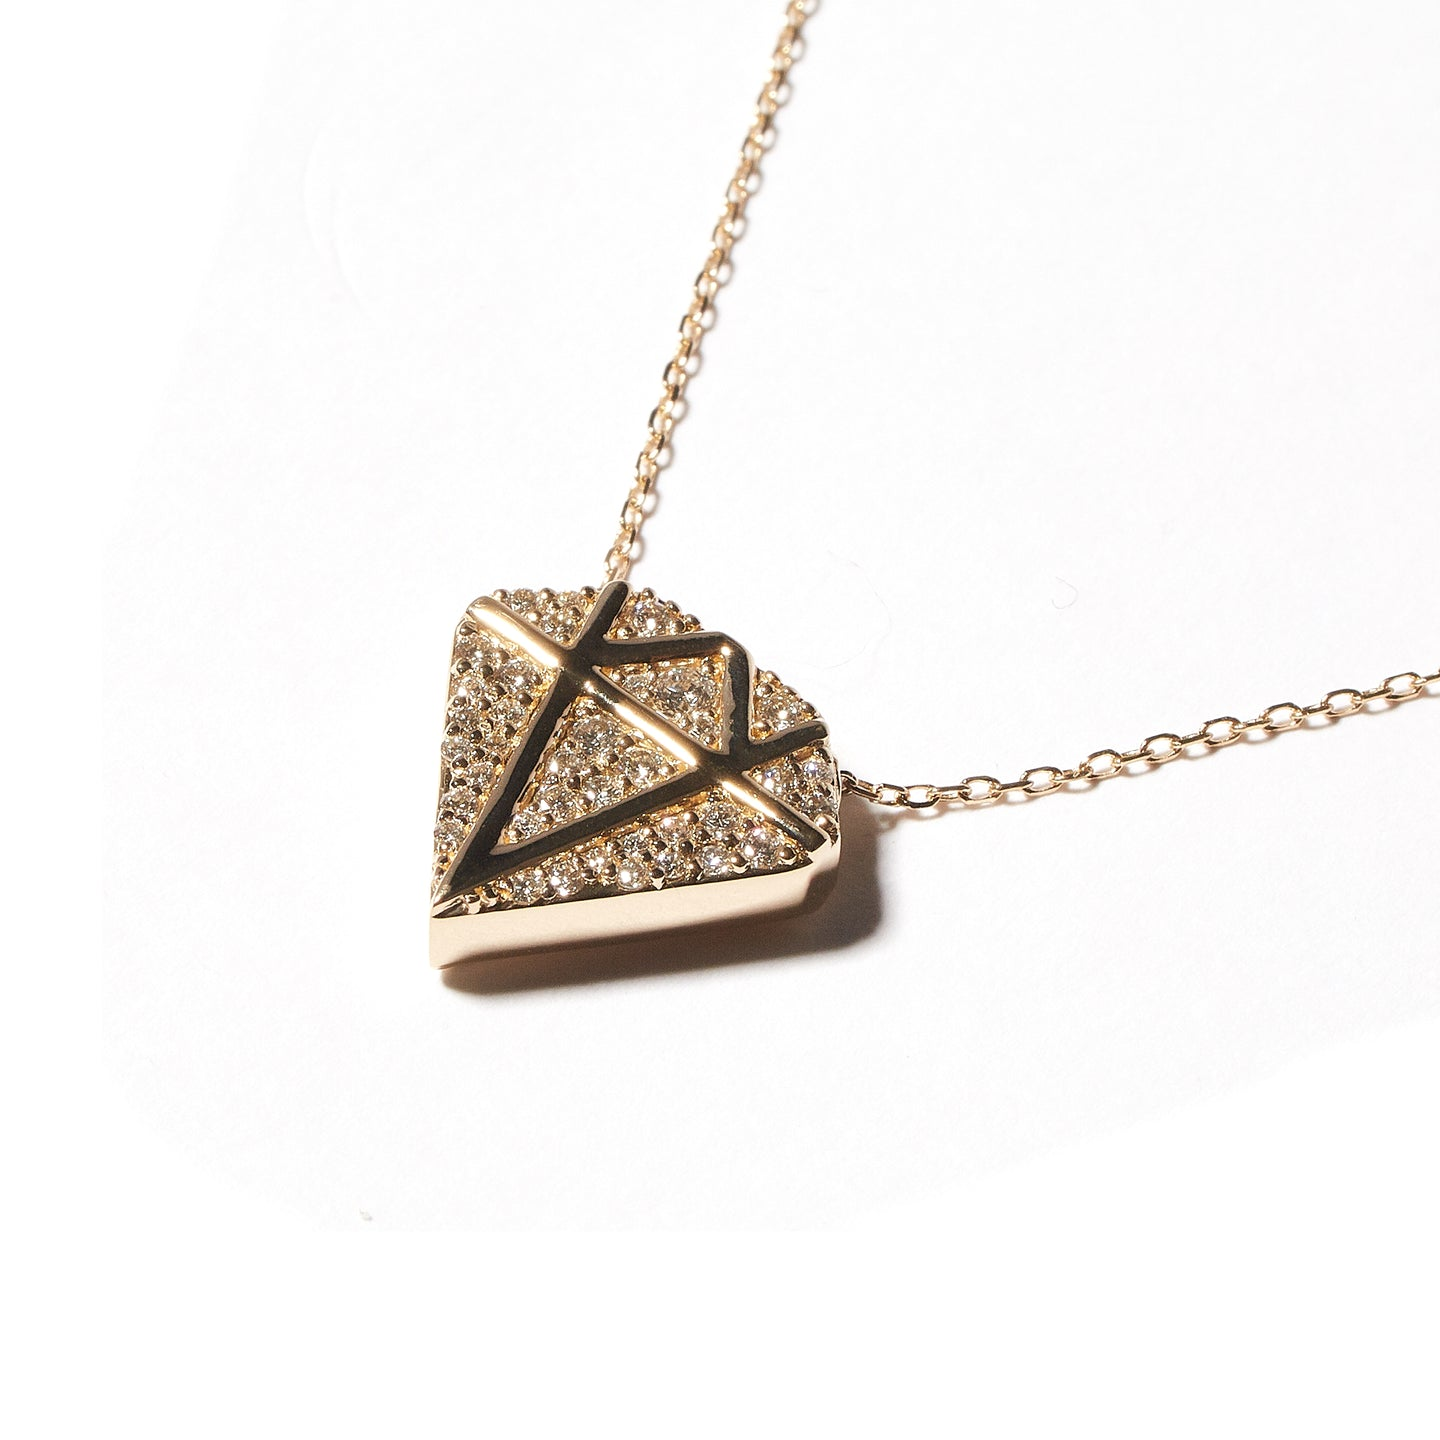 JuJu Diamond Charm Necklace